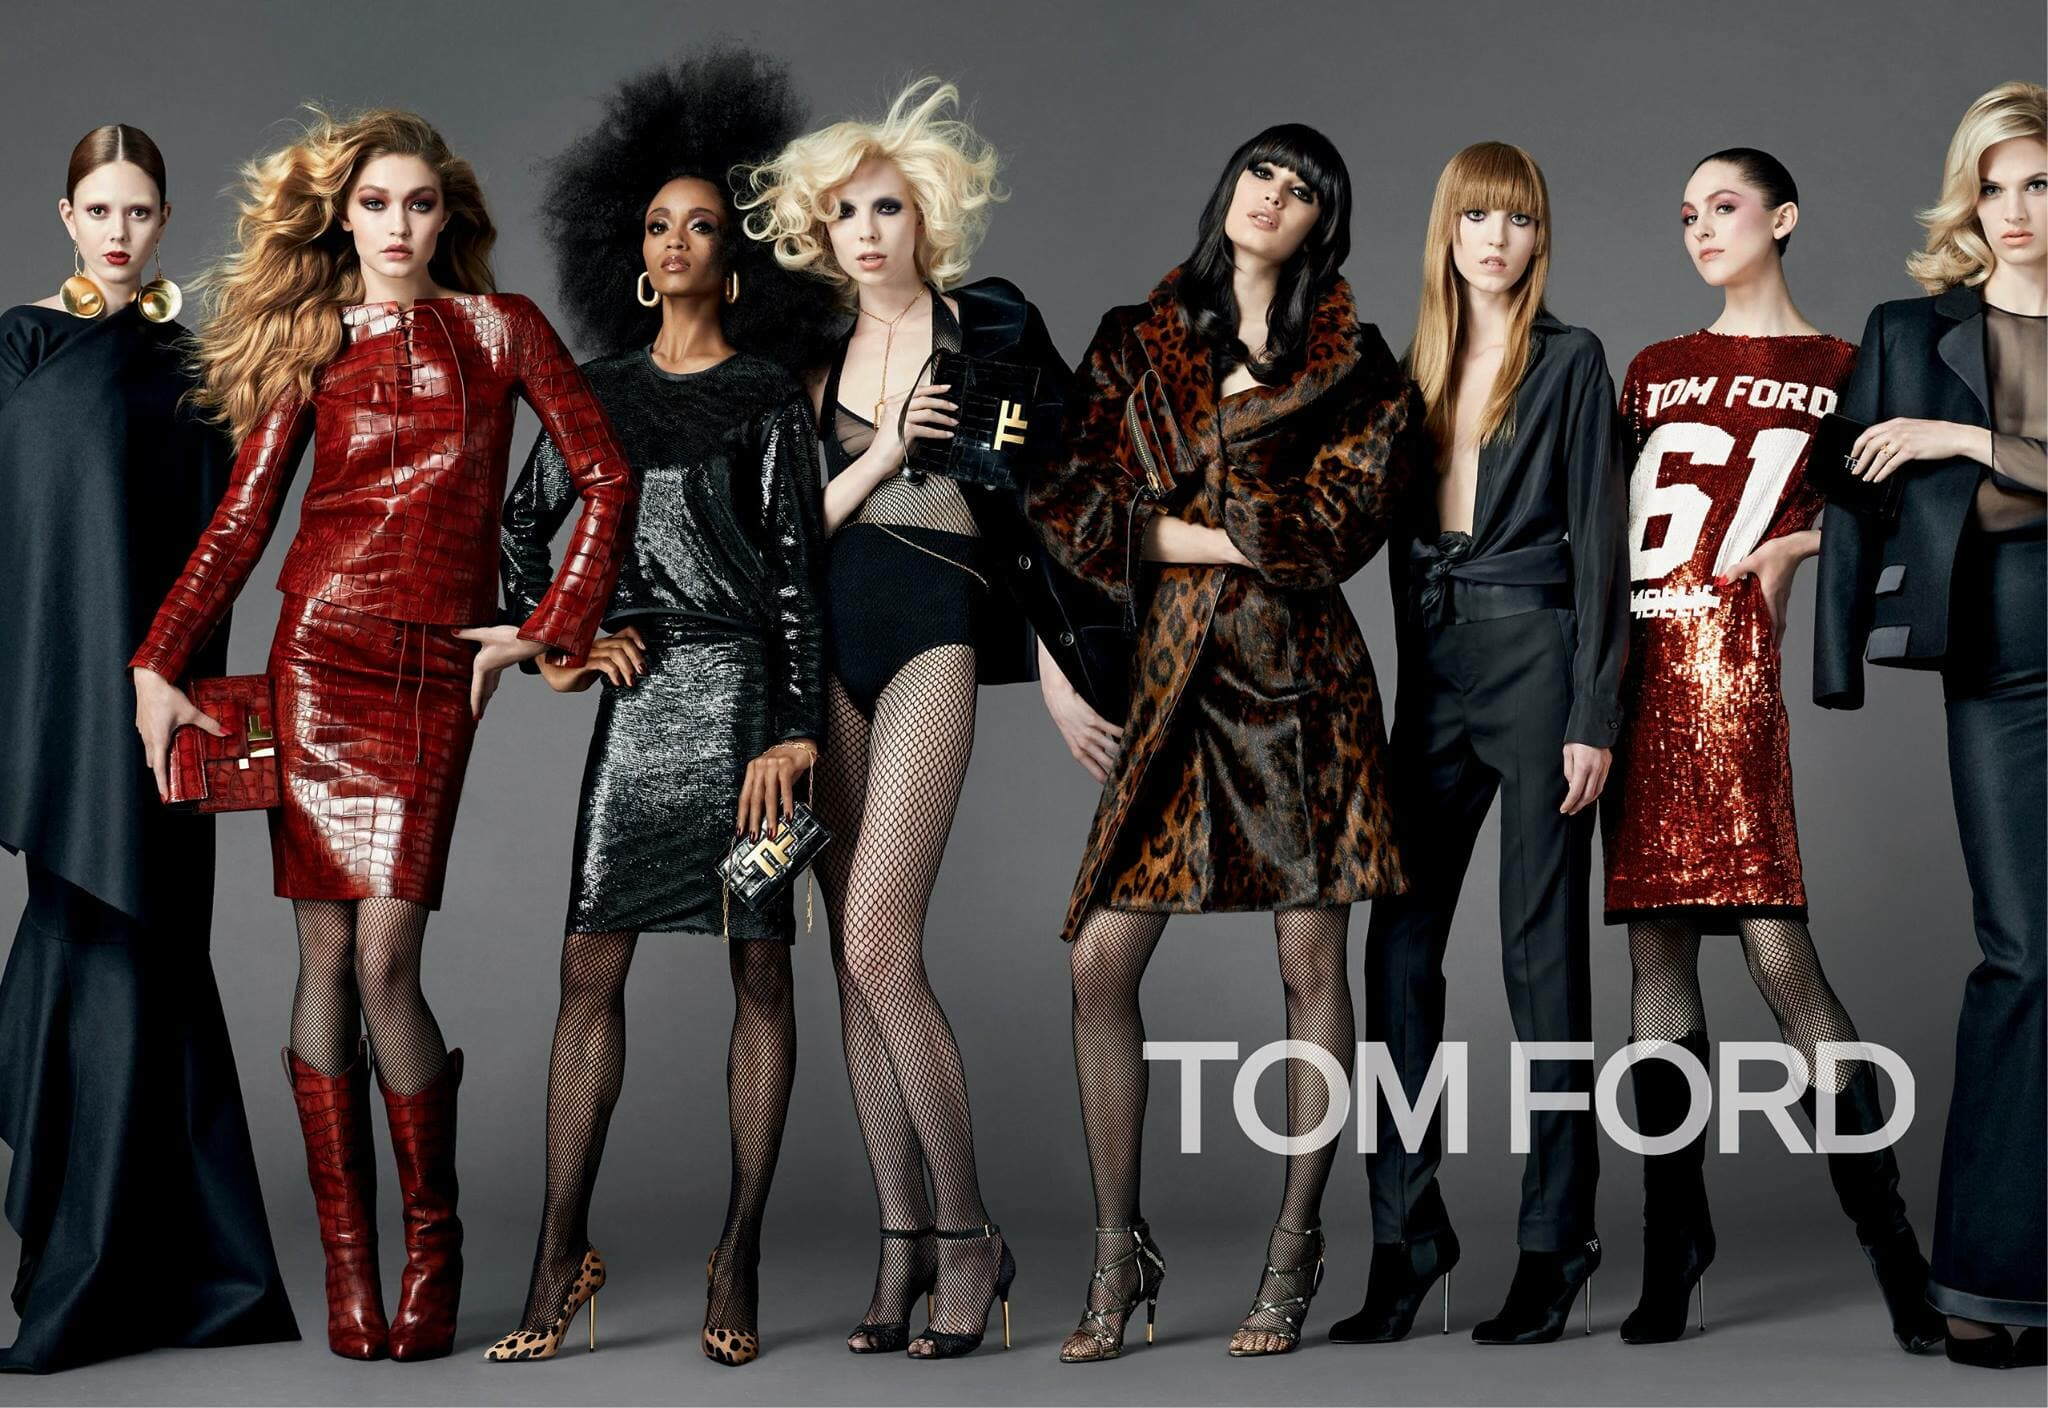 Tom Ford Fall 2014 campaign